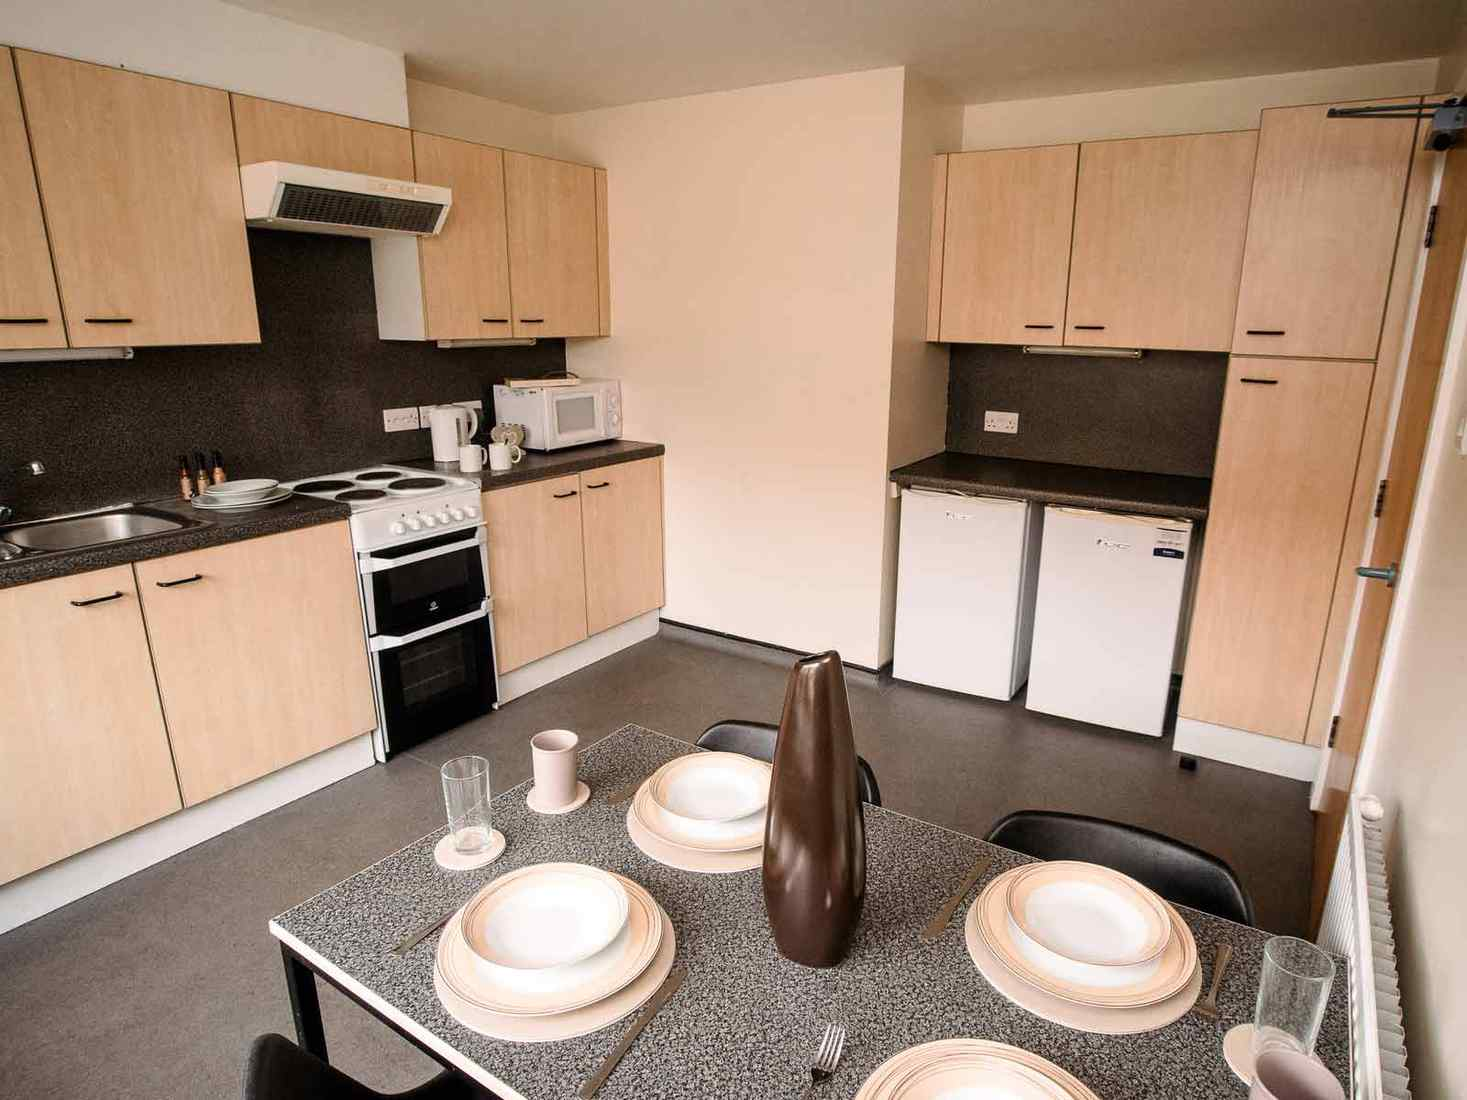 View of a kitchen in Limes Court, with cupboards on two walls, an oven, fridges, microwave, and table set for four.